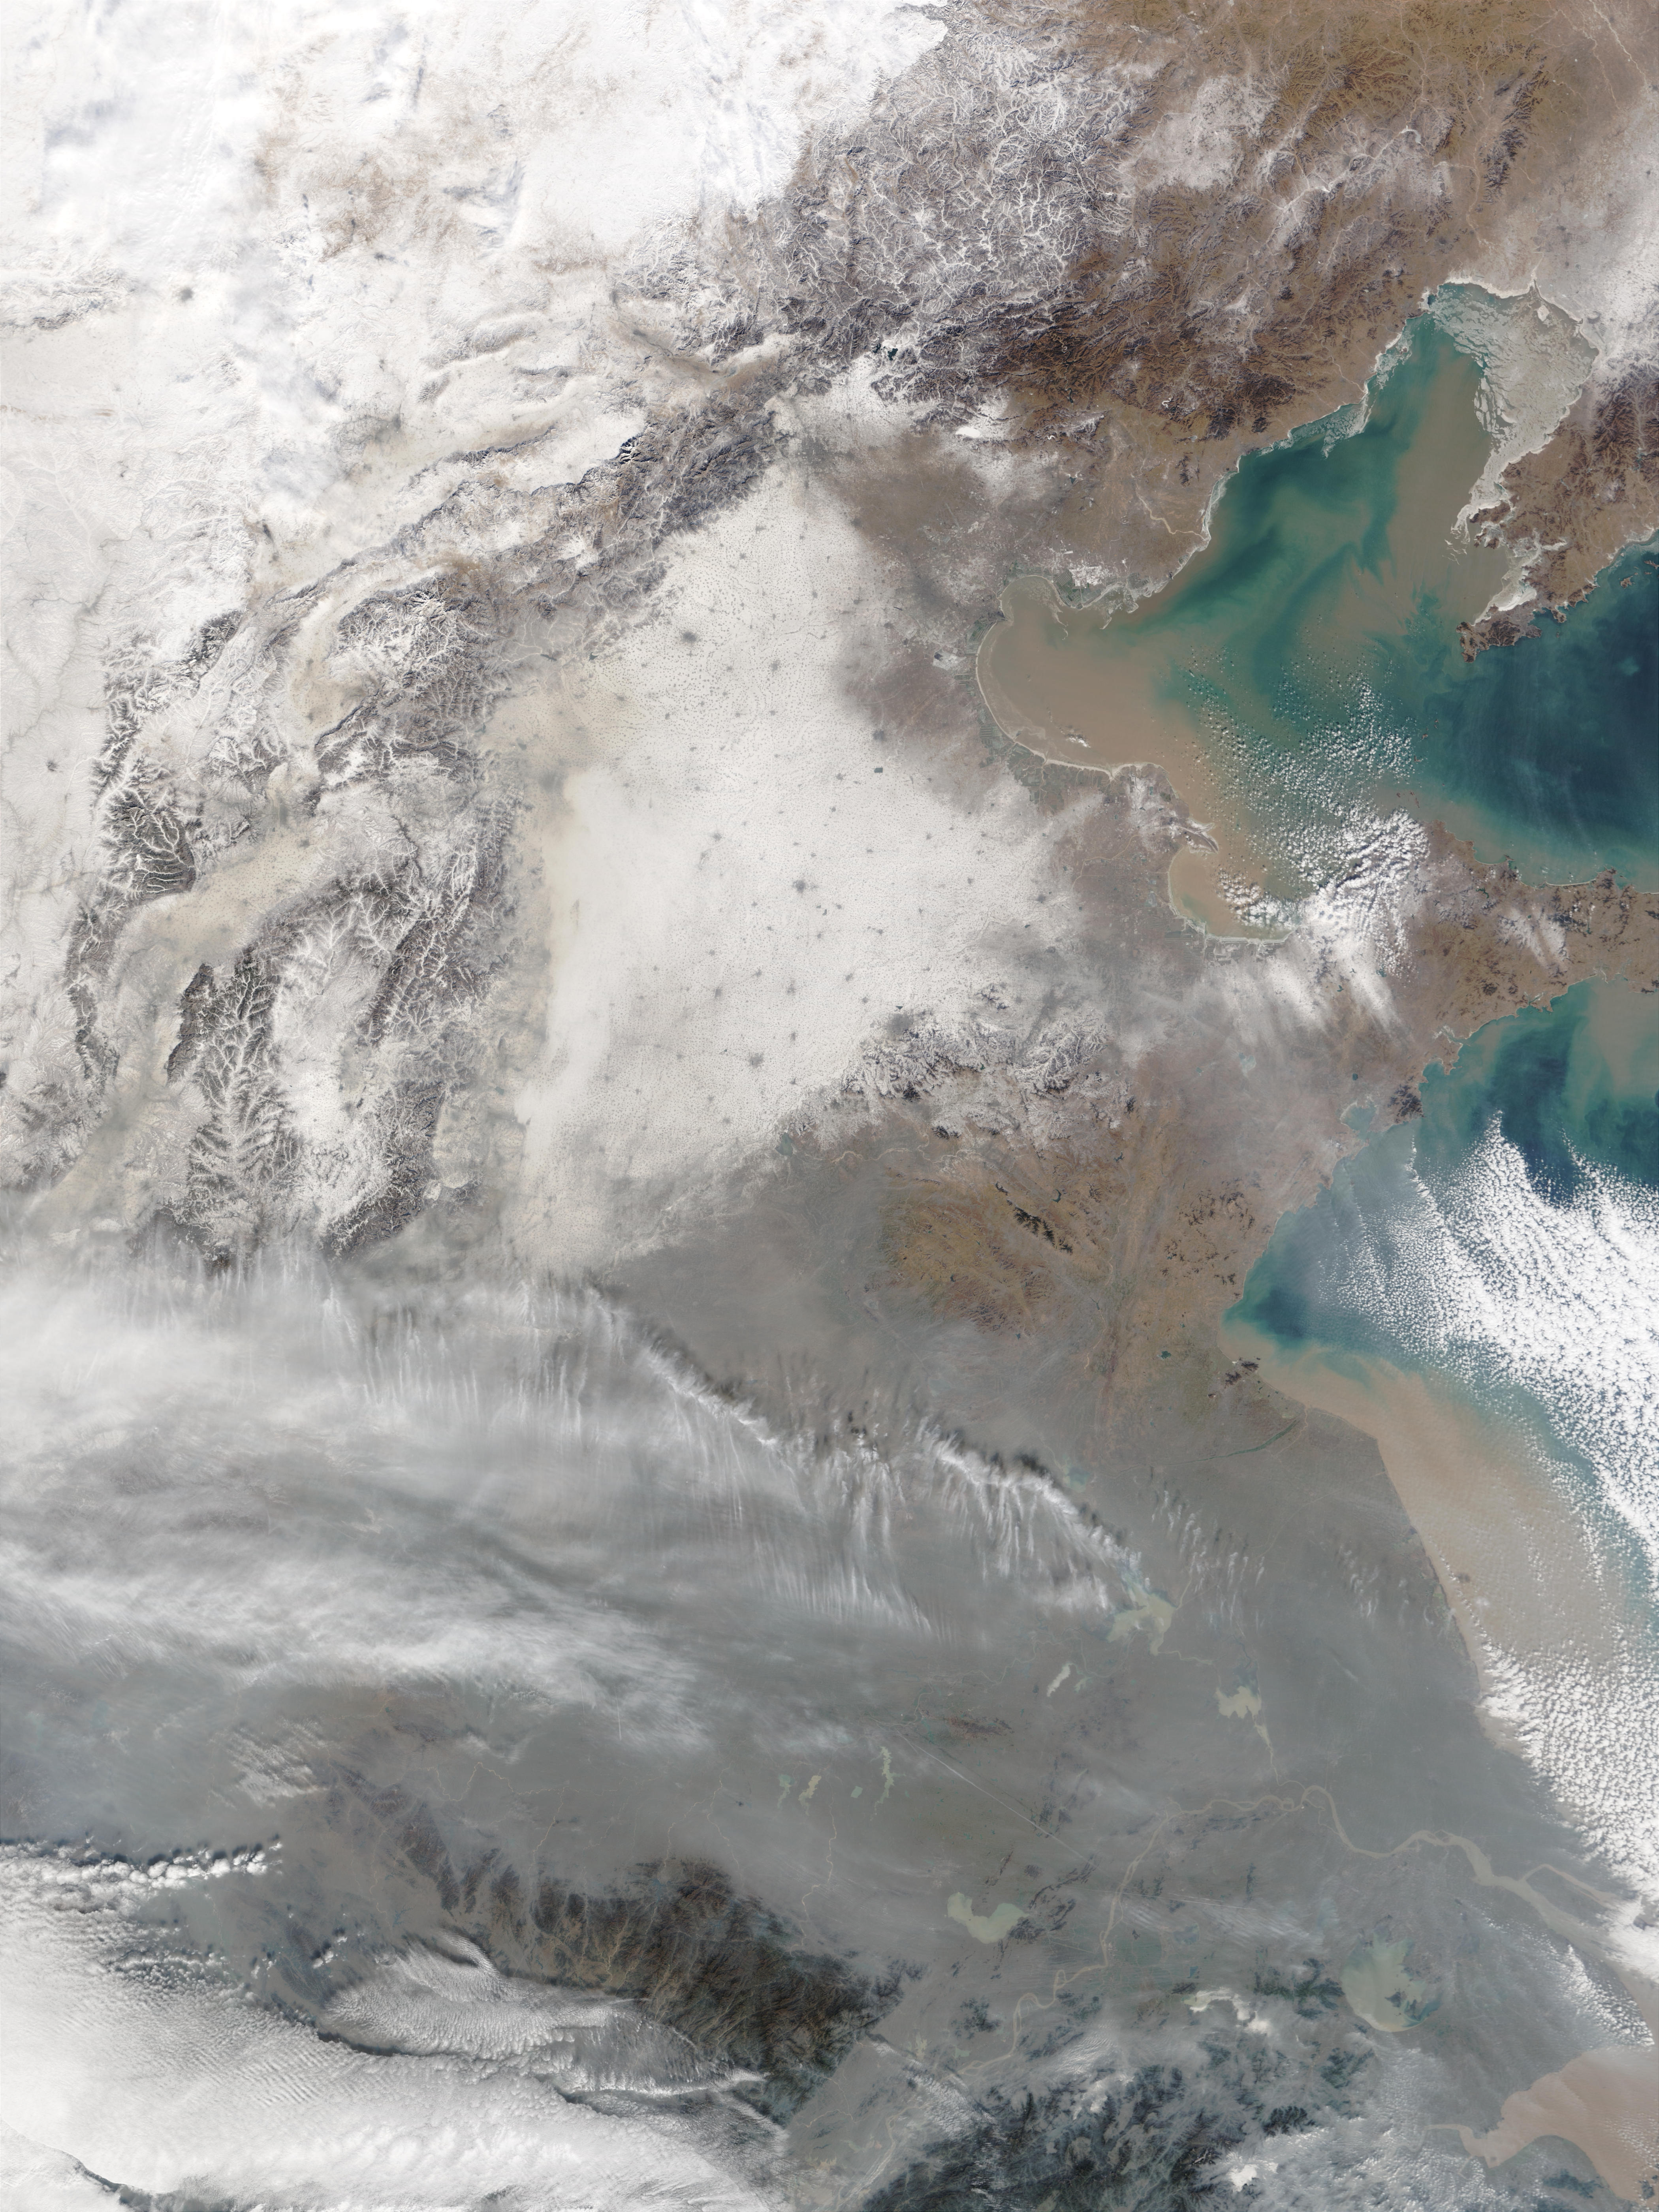 Snow and pollution in Eastern China